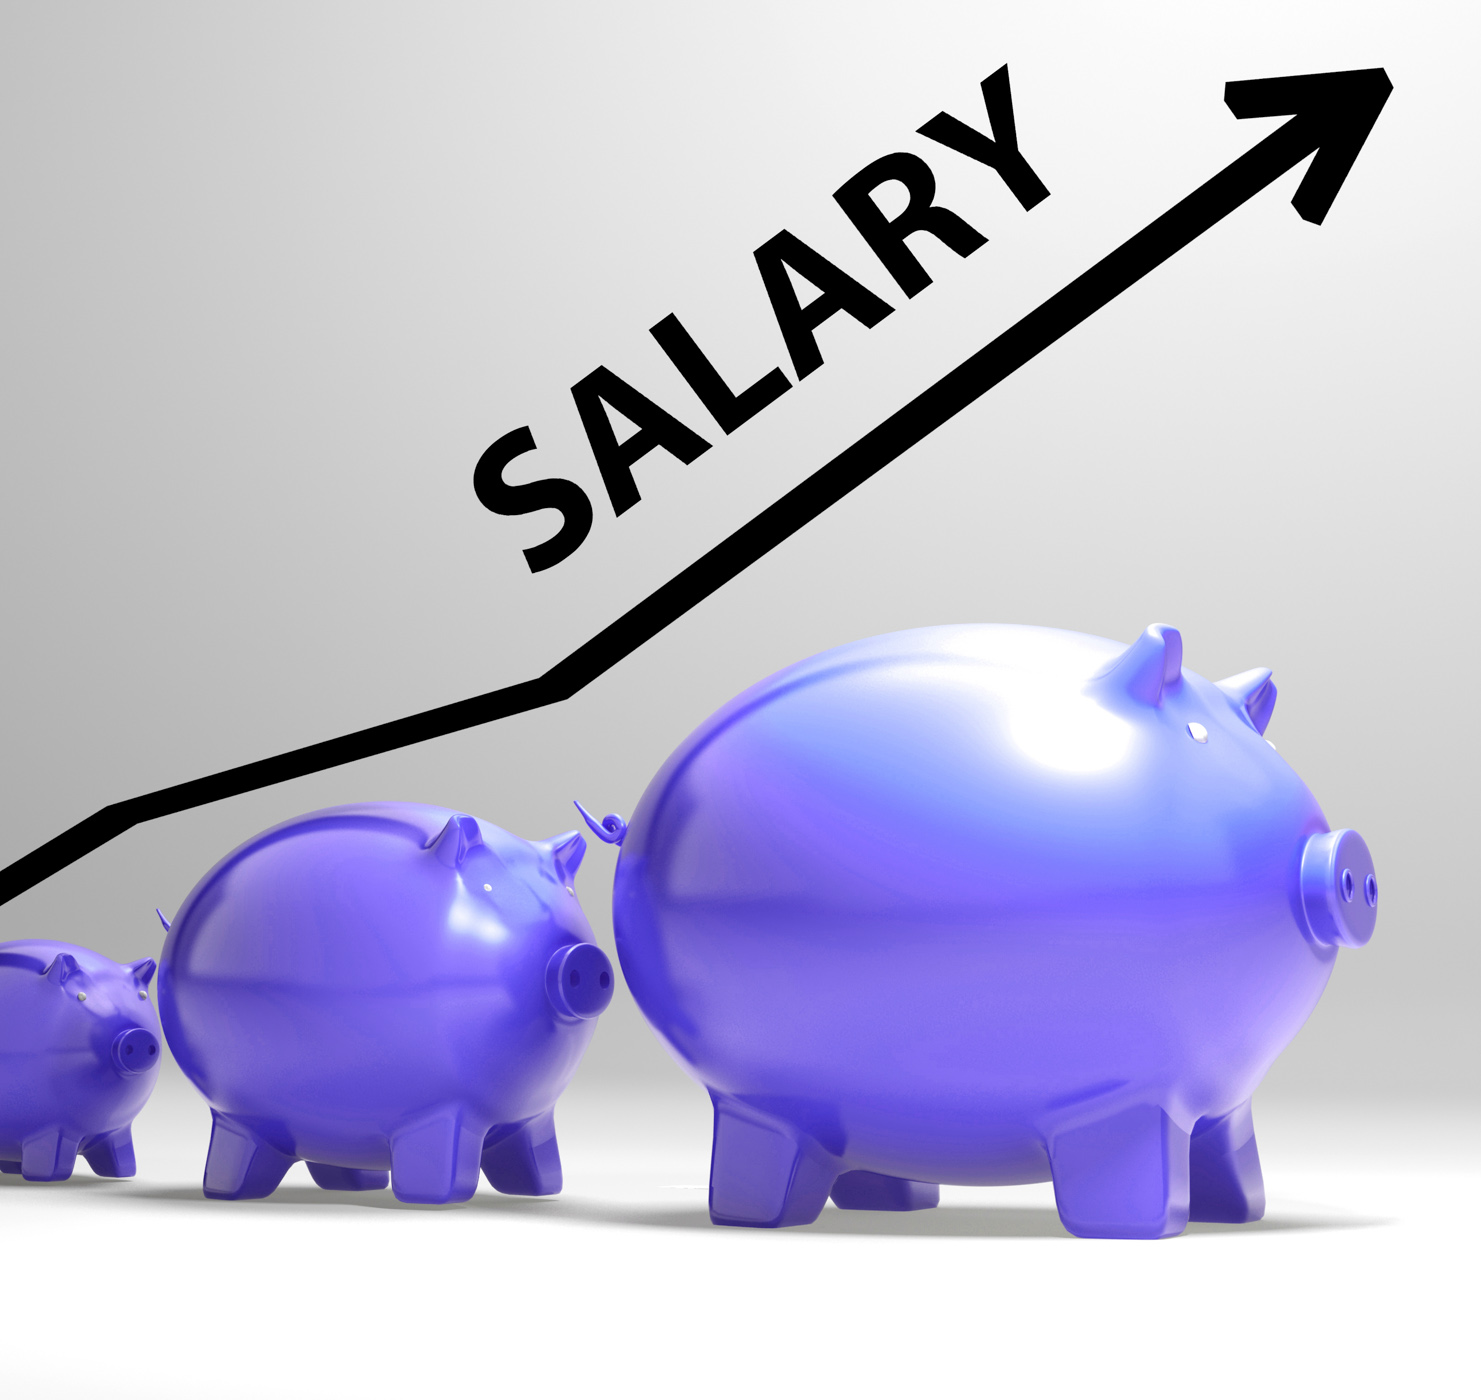 Salary arrow shows pay rise for workers photo